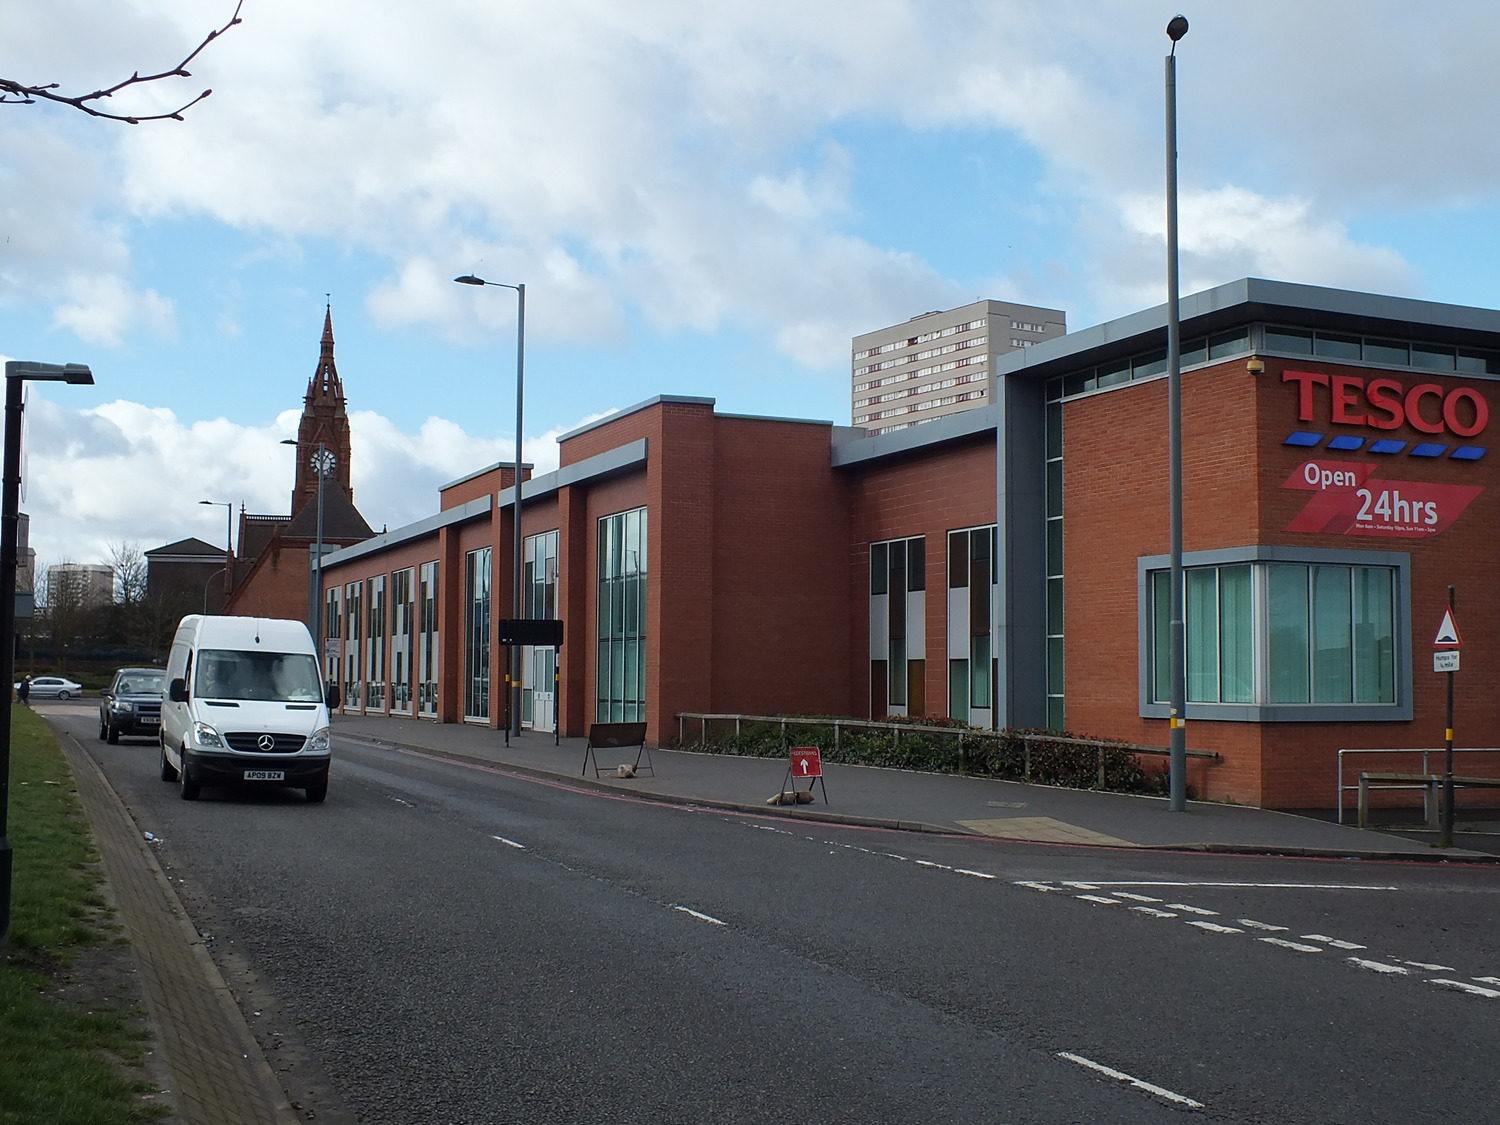 NEW TESCO STORE ICKNIELD STREET CNR WITH CAMDEN STREET 2015